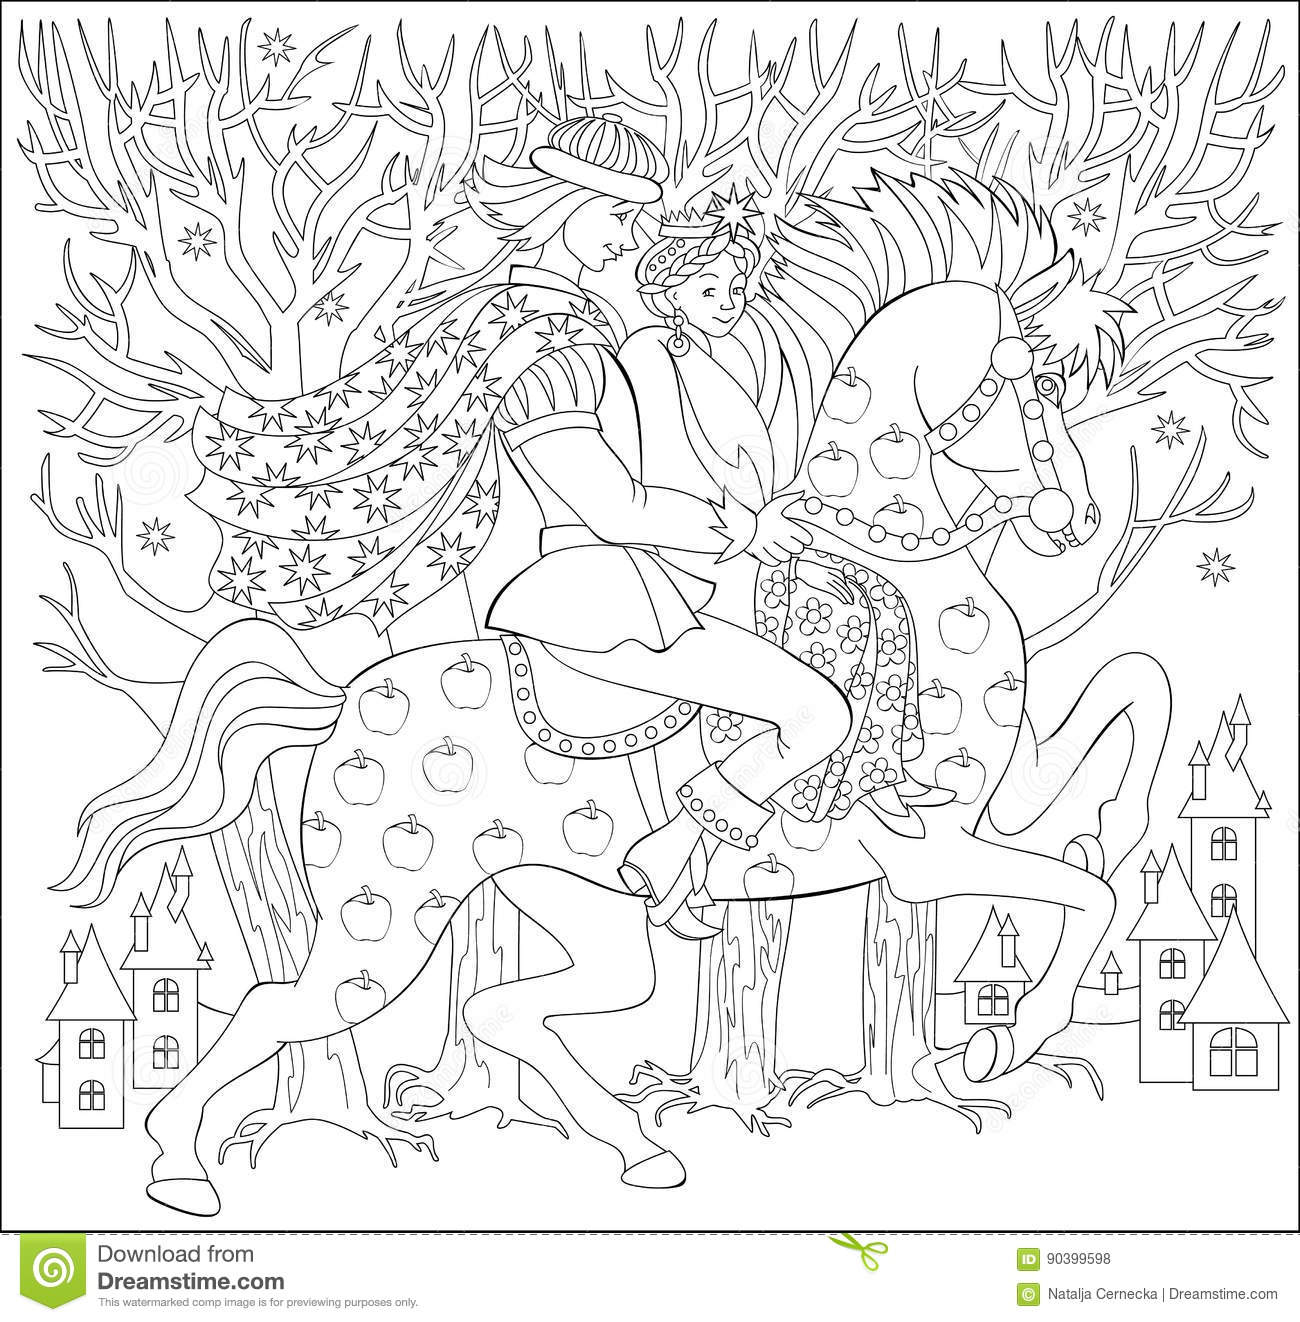 Black And White Illustration Of Prince And Princes Riding On Horse For Coloring Worksheet For